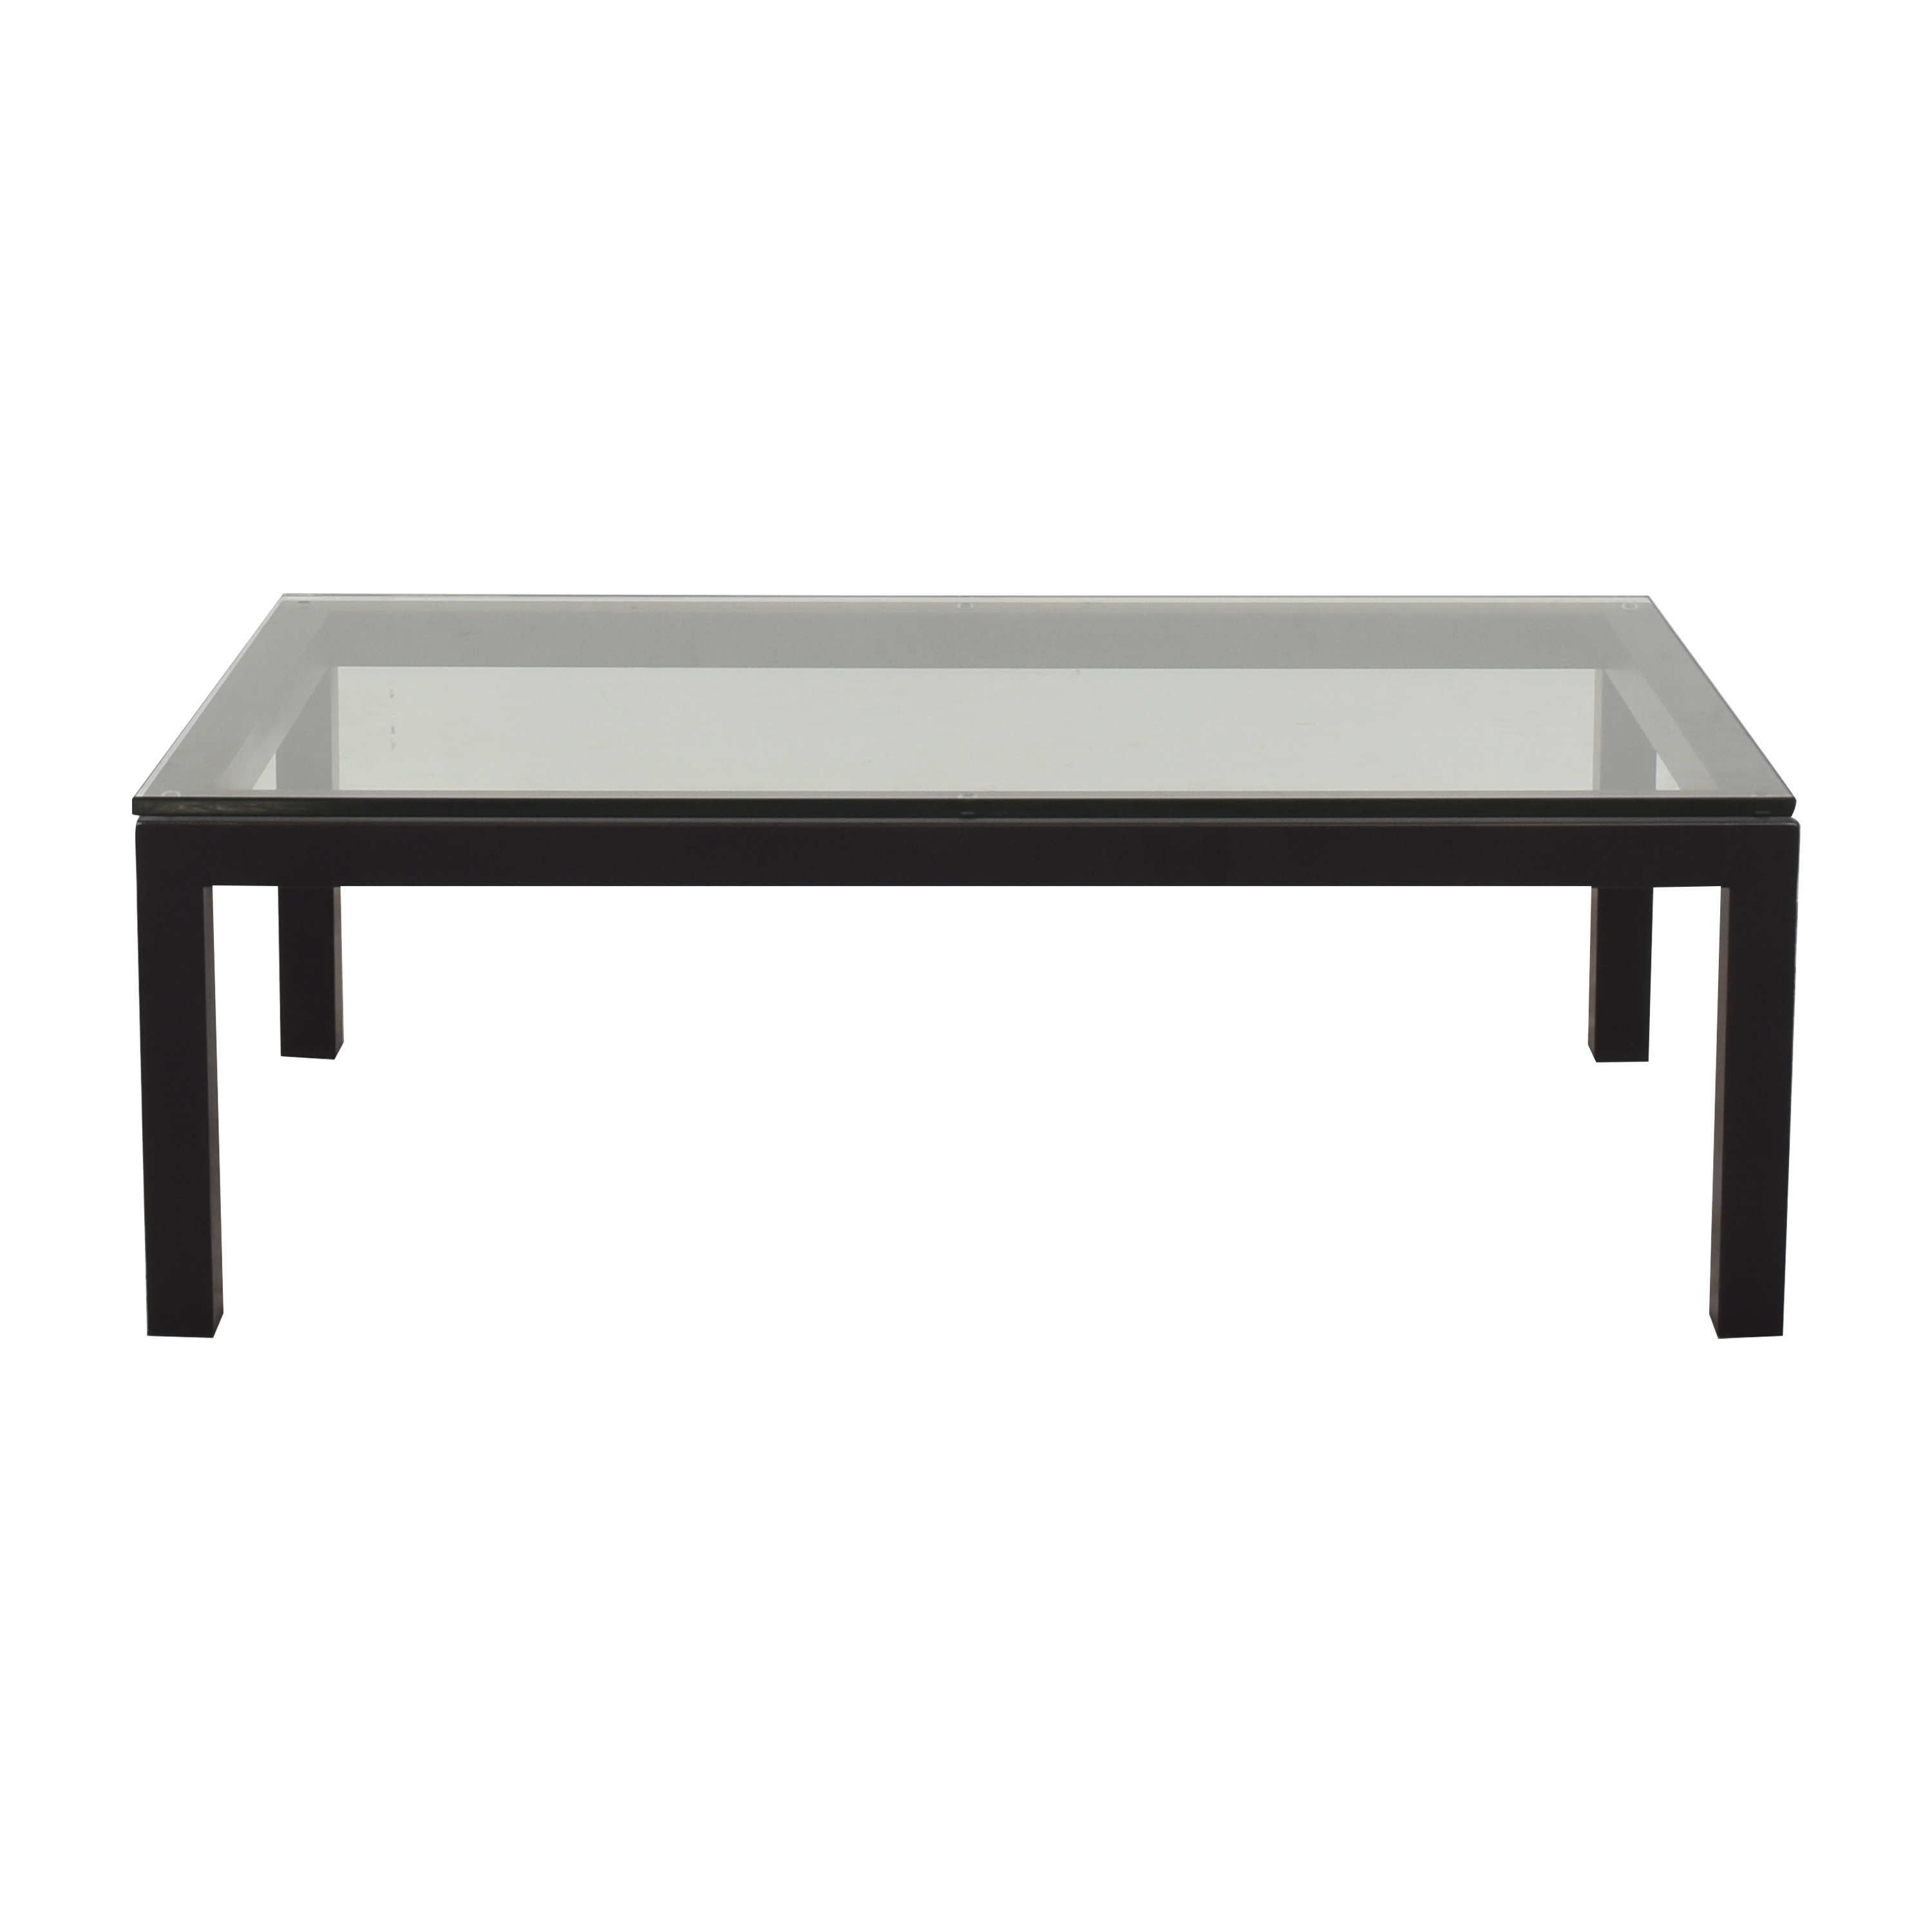 buy Crate & Barrel Parsons Coffee Table Crate & Barrel Coffee Tables